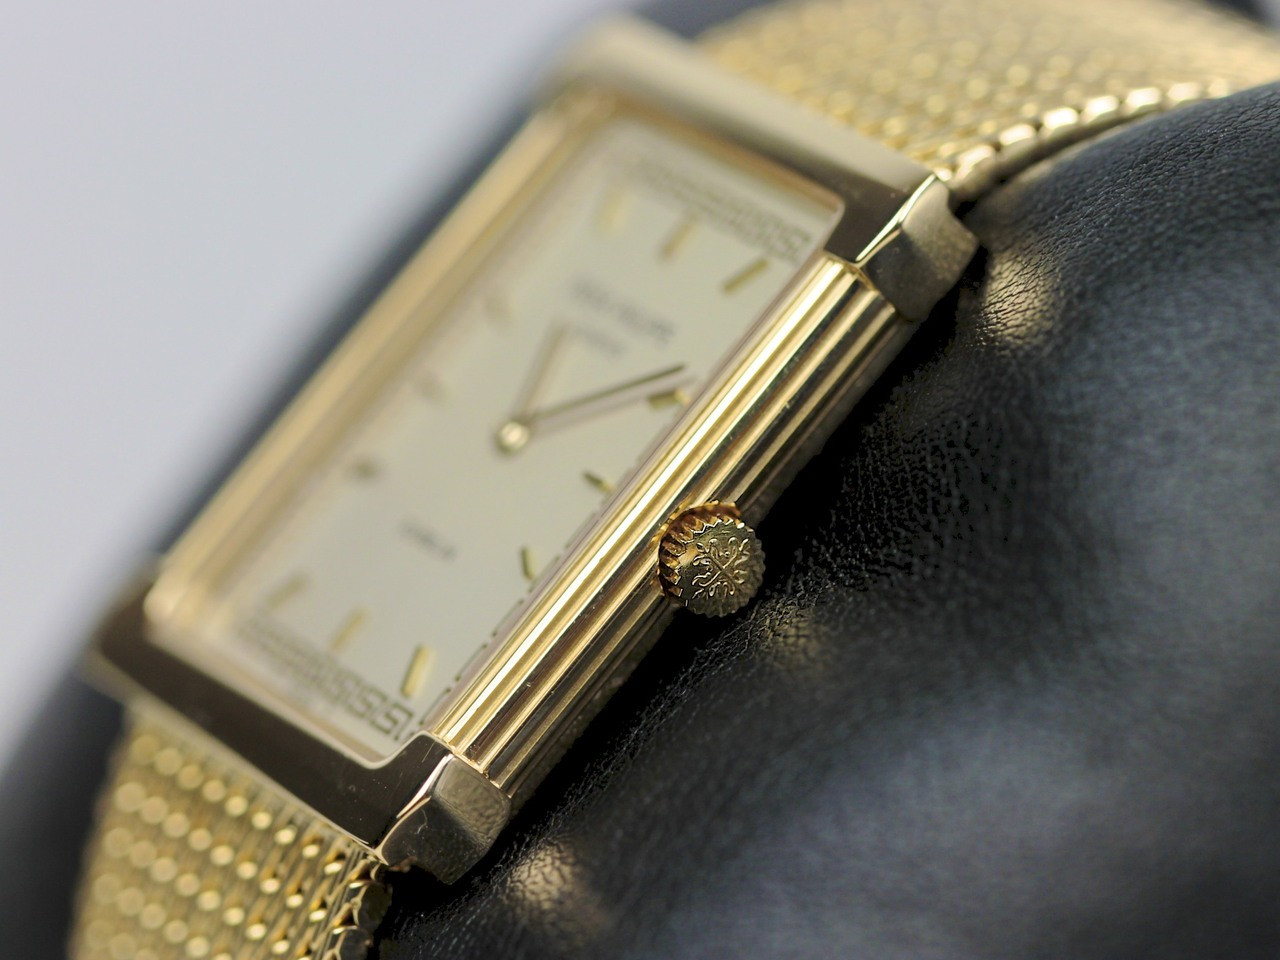 "Crown - Vintage Patek Philippe Rectangular Gubelin Gold ""Les Grecques"" 3775 - www.Legendoftime.com - Chicago Watch Center"